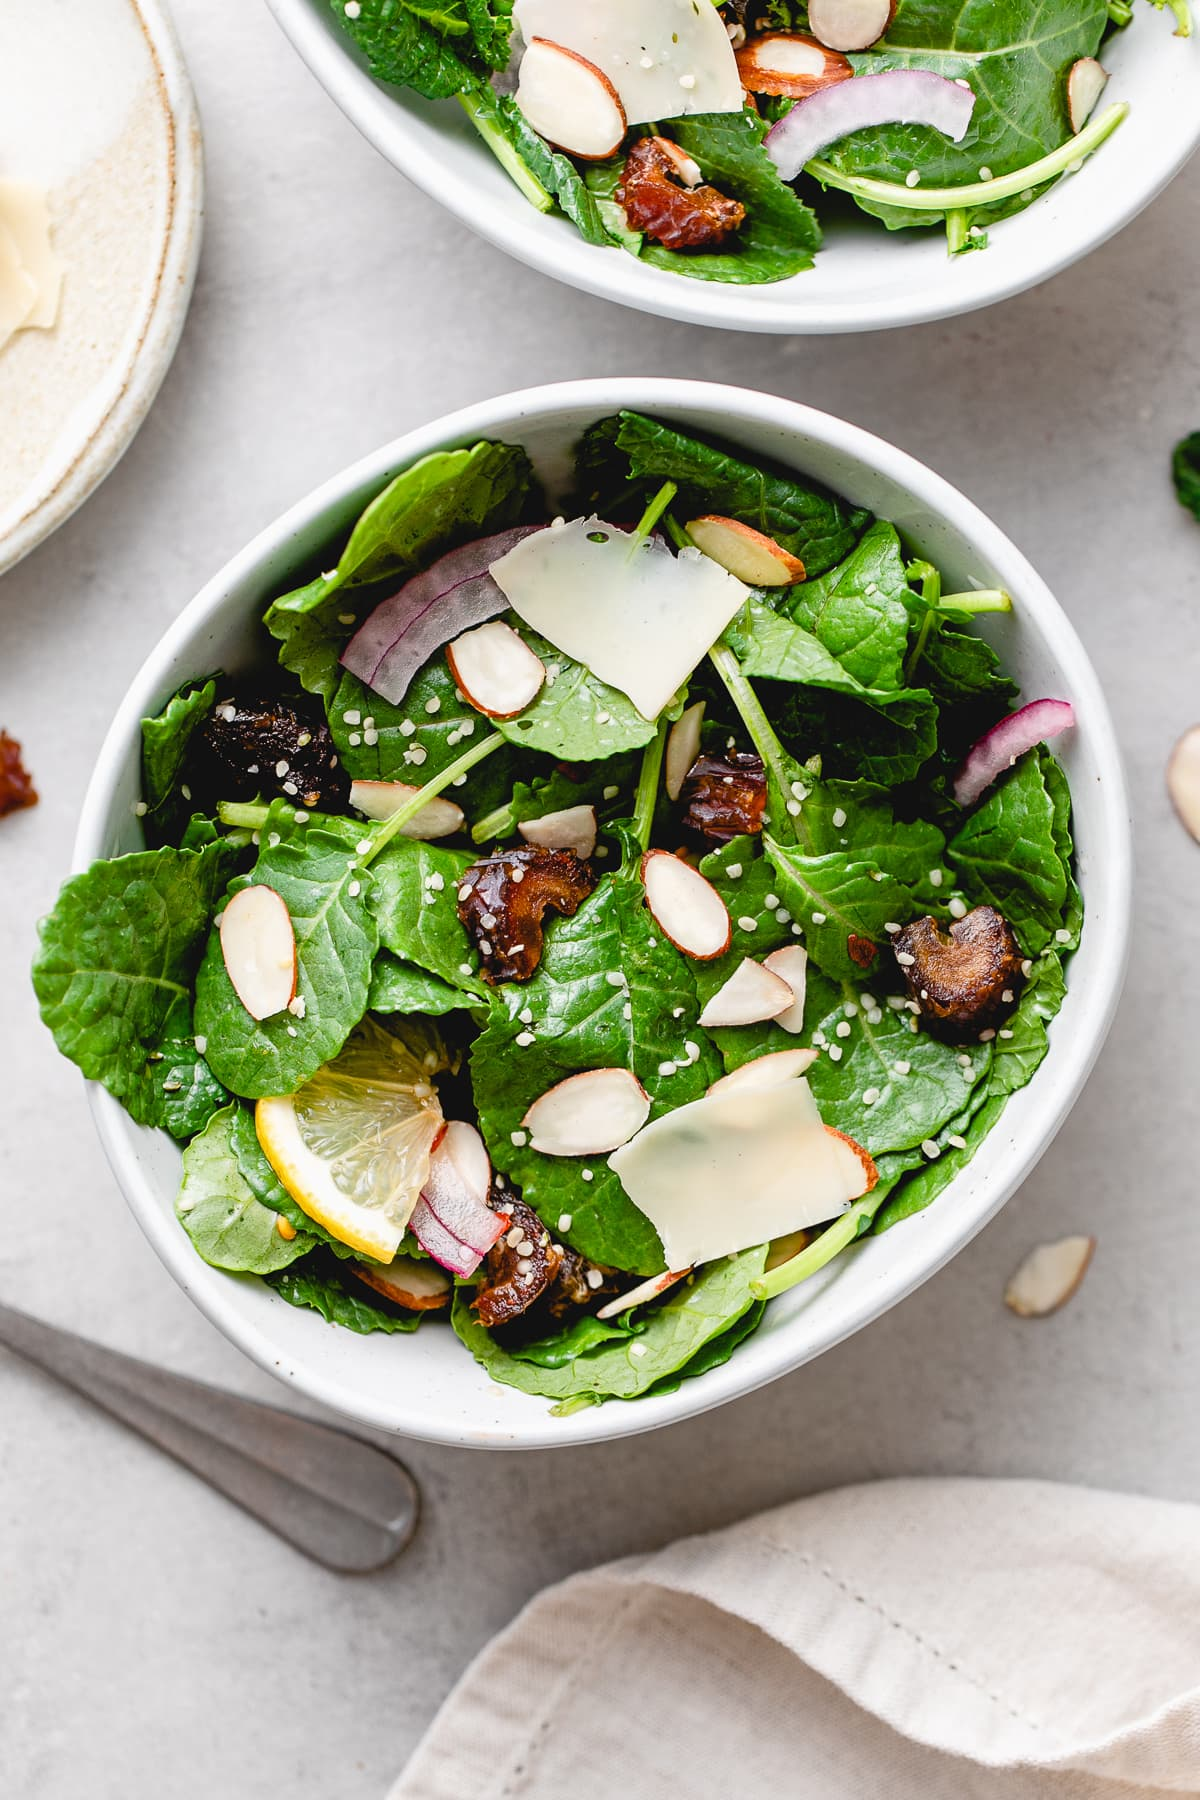 top down view of healthy kale salad with dates and almonds.